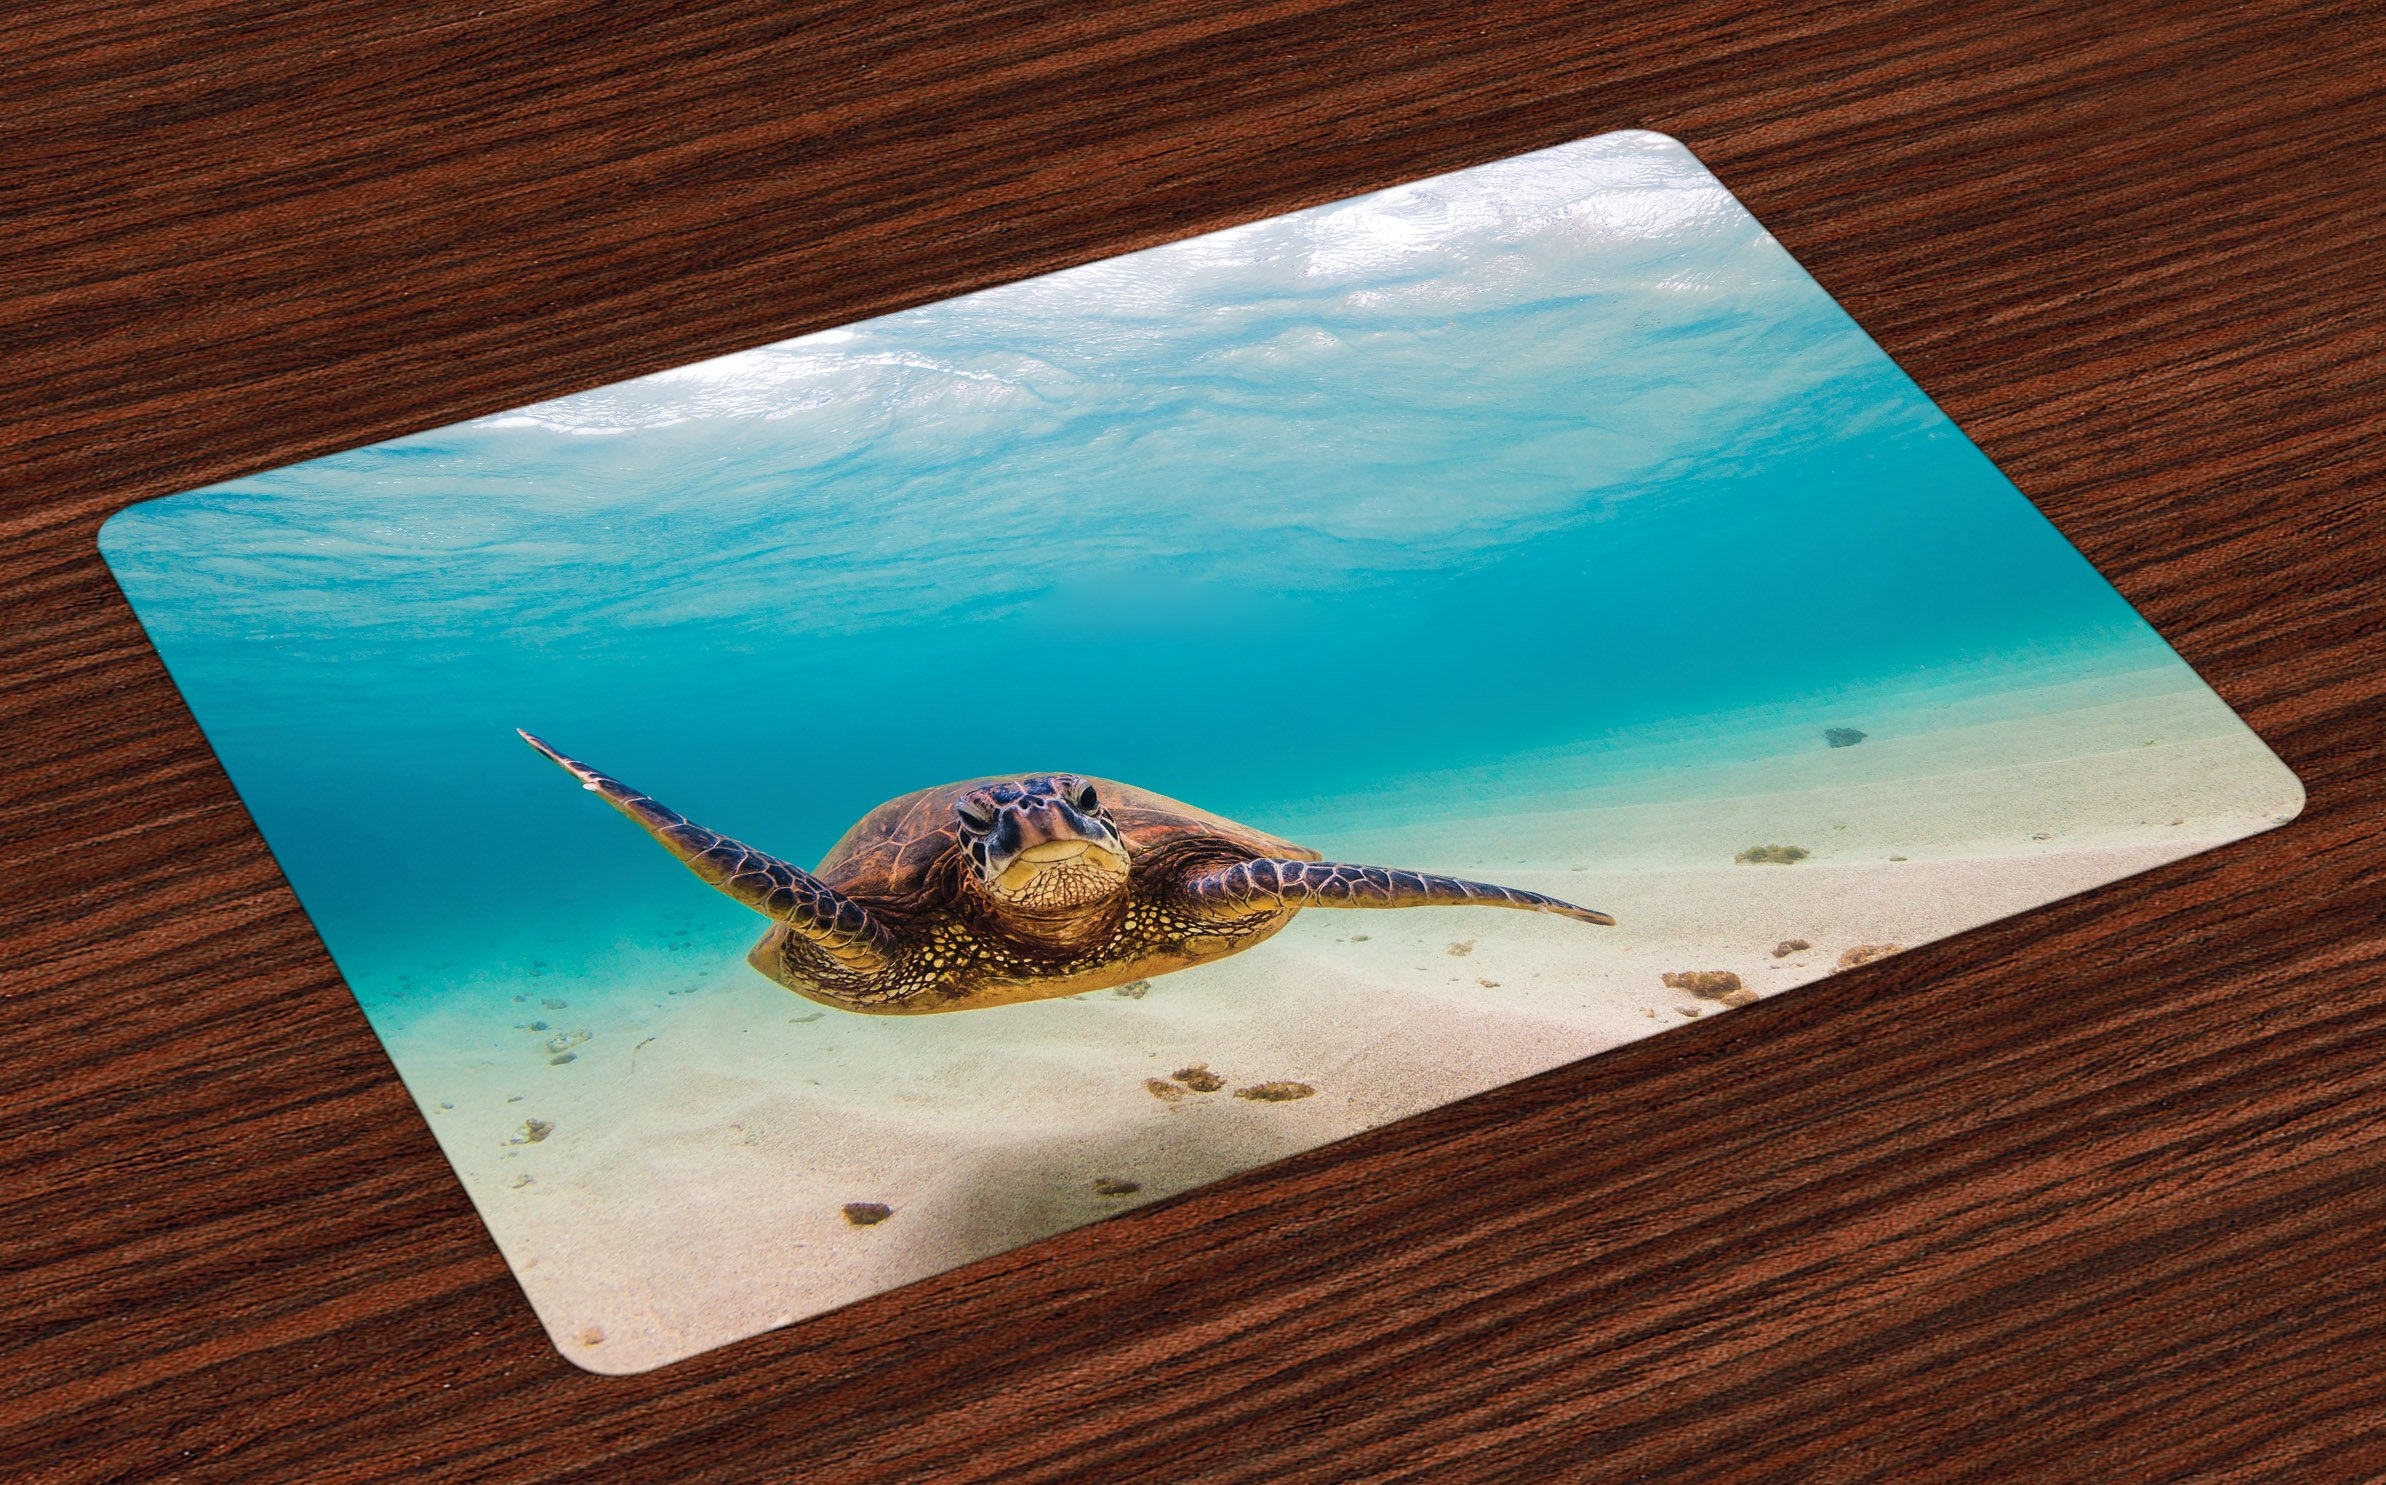 Lunarable Hawaiian Place Mats Set of 4, Underwater Scuba Diving Sea Turtle Nature Animal Swimming Wildlife Theme, Washable Fabric Placemats for Dining Room Kitchen Table Decoration, Blue Beige Brown